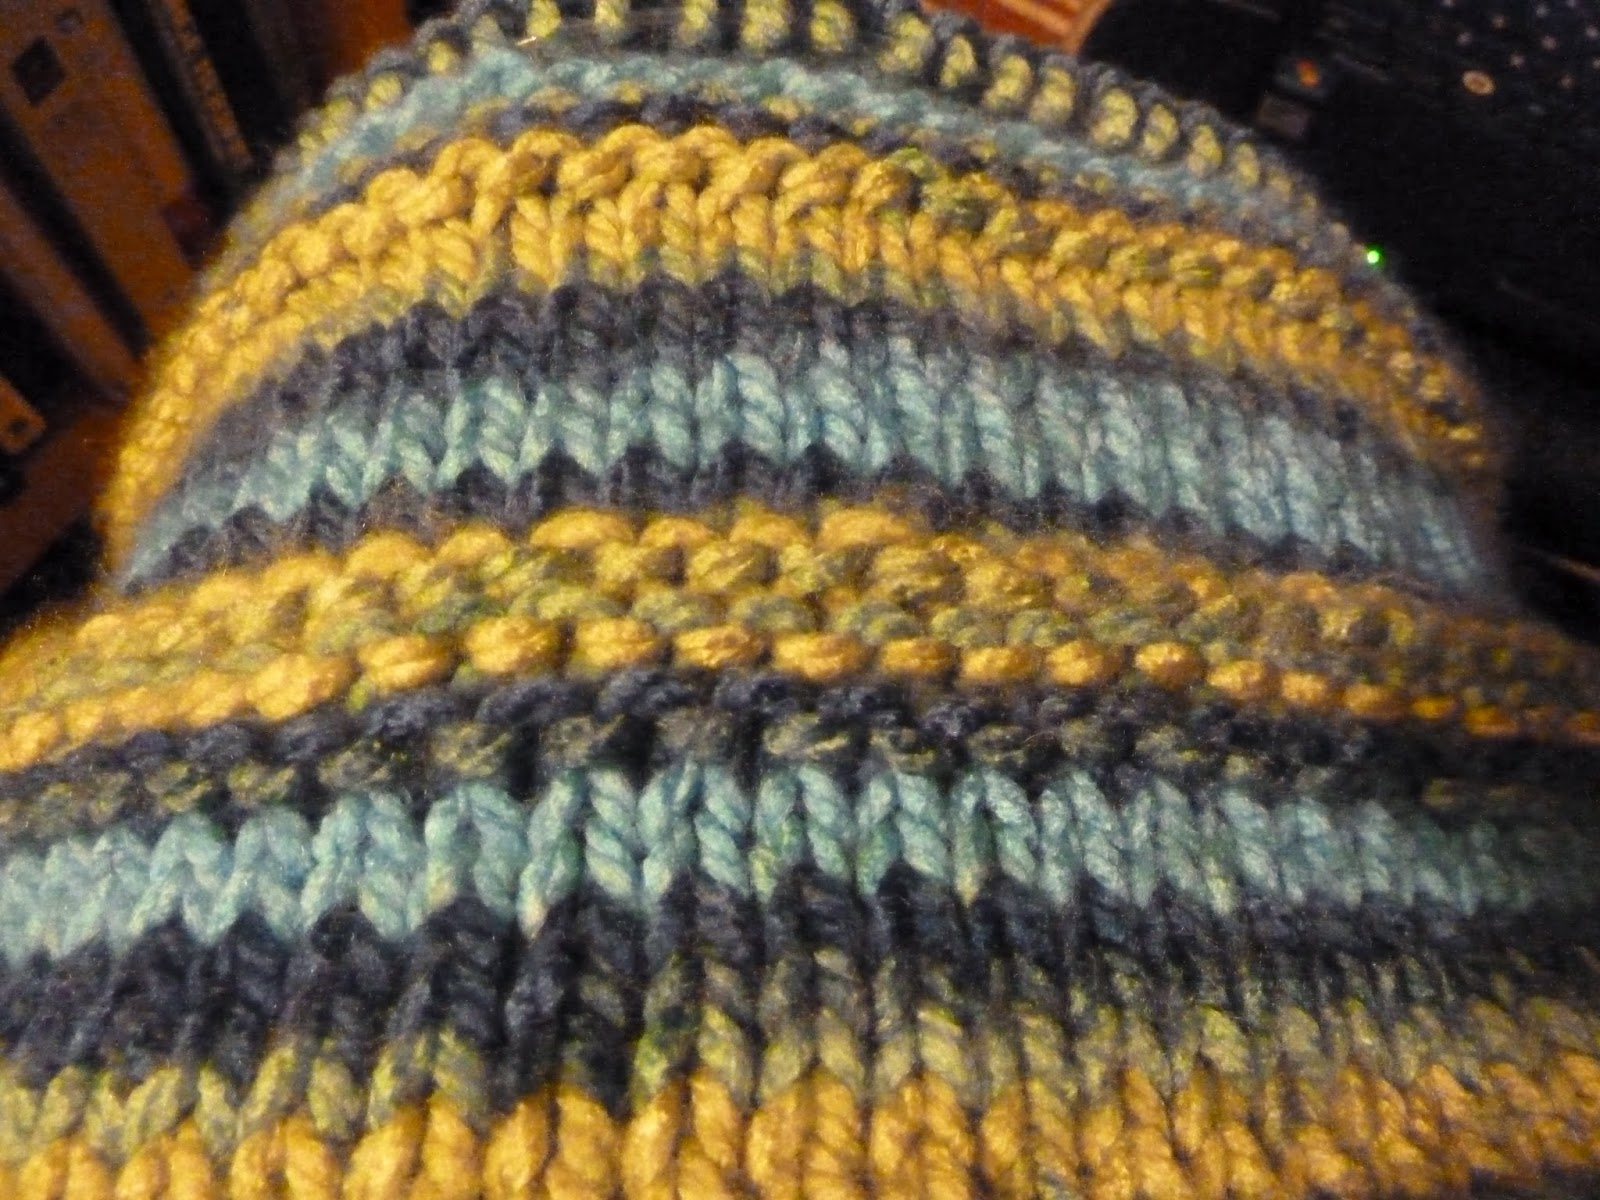 Knitting Stitch Patterns For Variegated Yarn : Marlenes Space: A New Knitting Project: A Knit Afghan